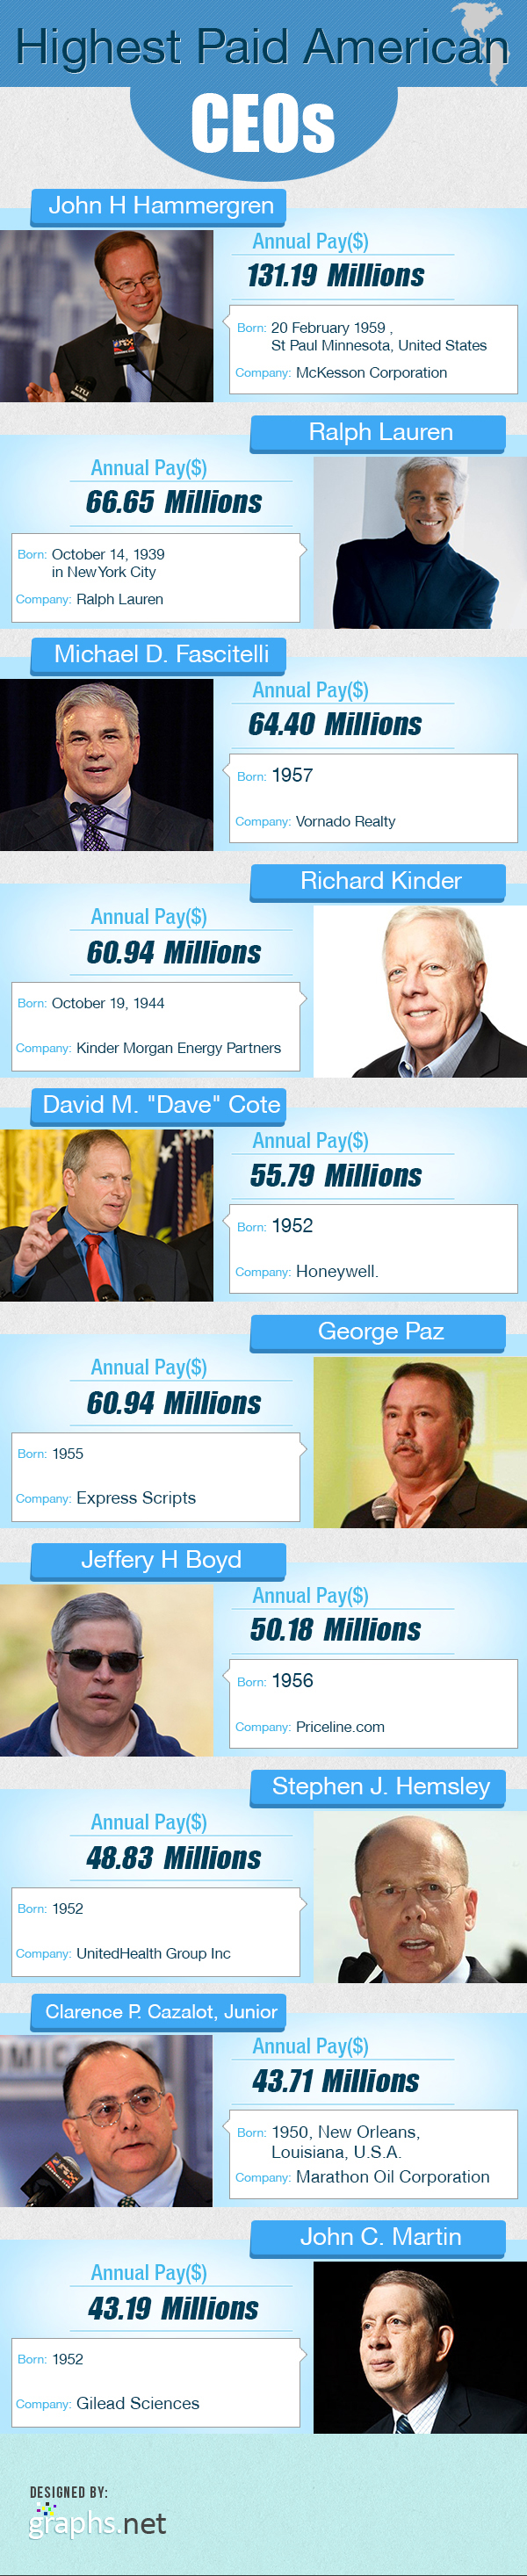 Highest Paid American CEOs